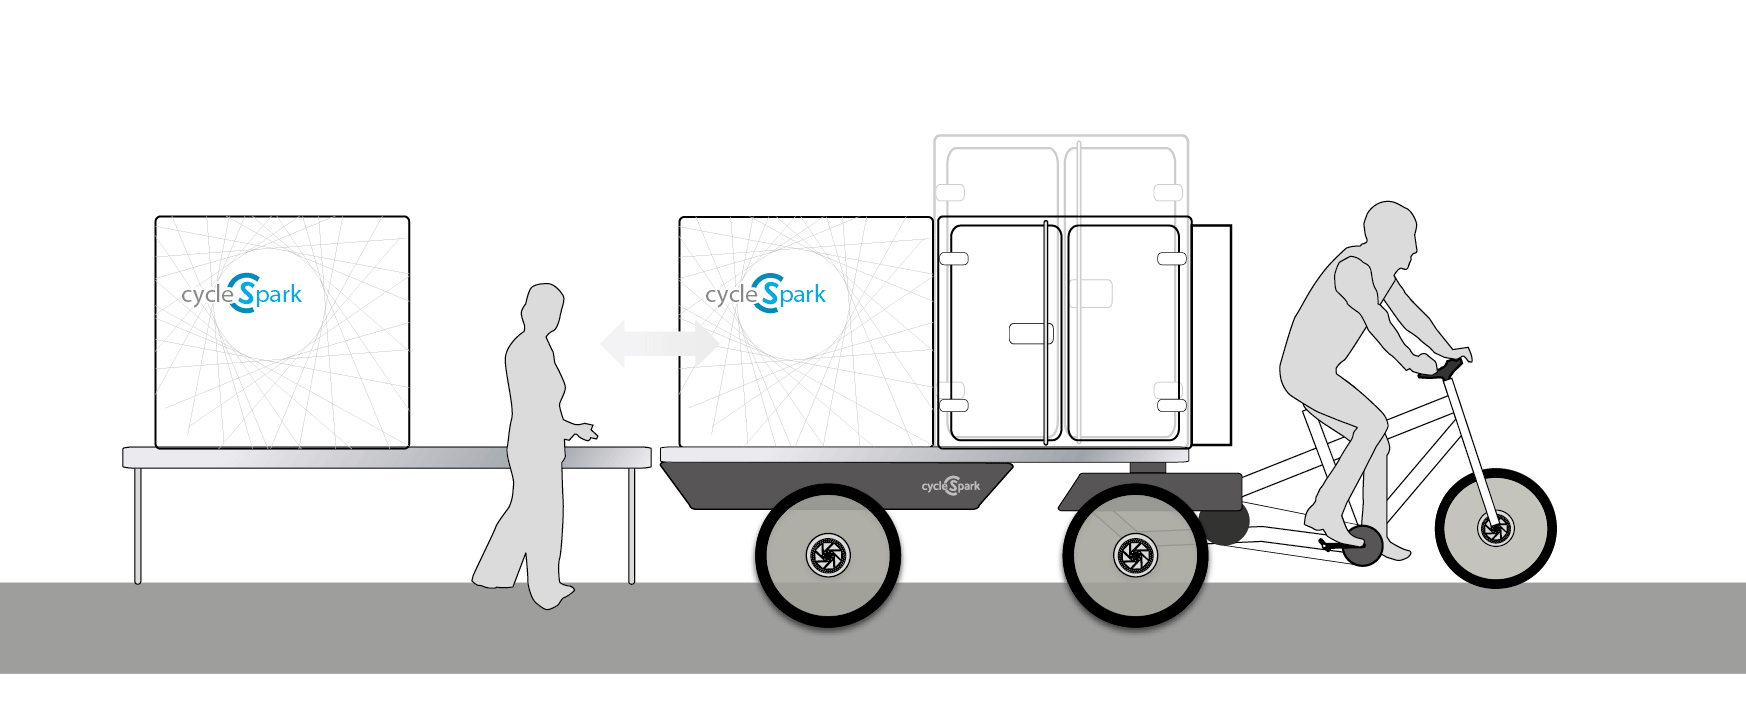 cyclespark_cargobikexl_citycontainer_thermobox